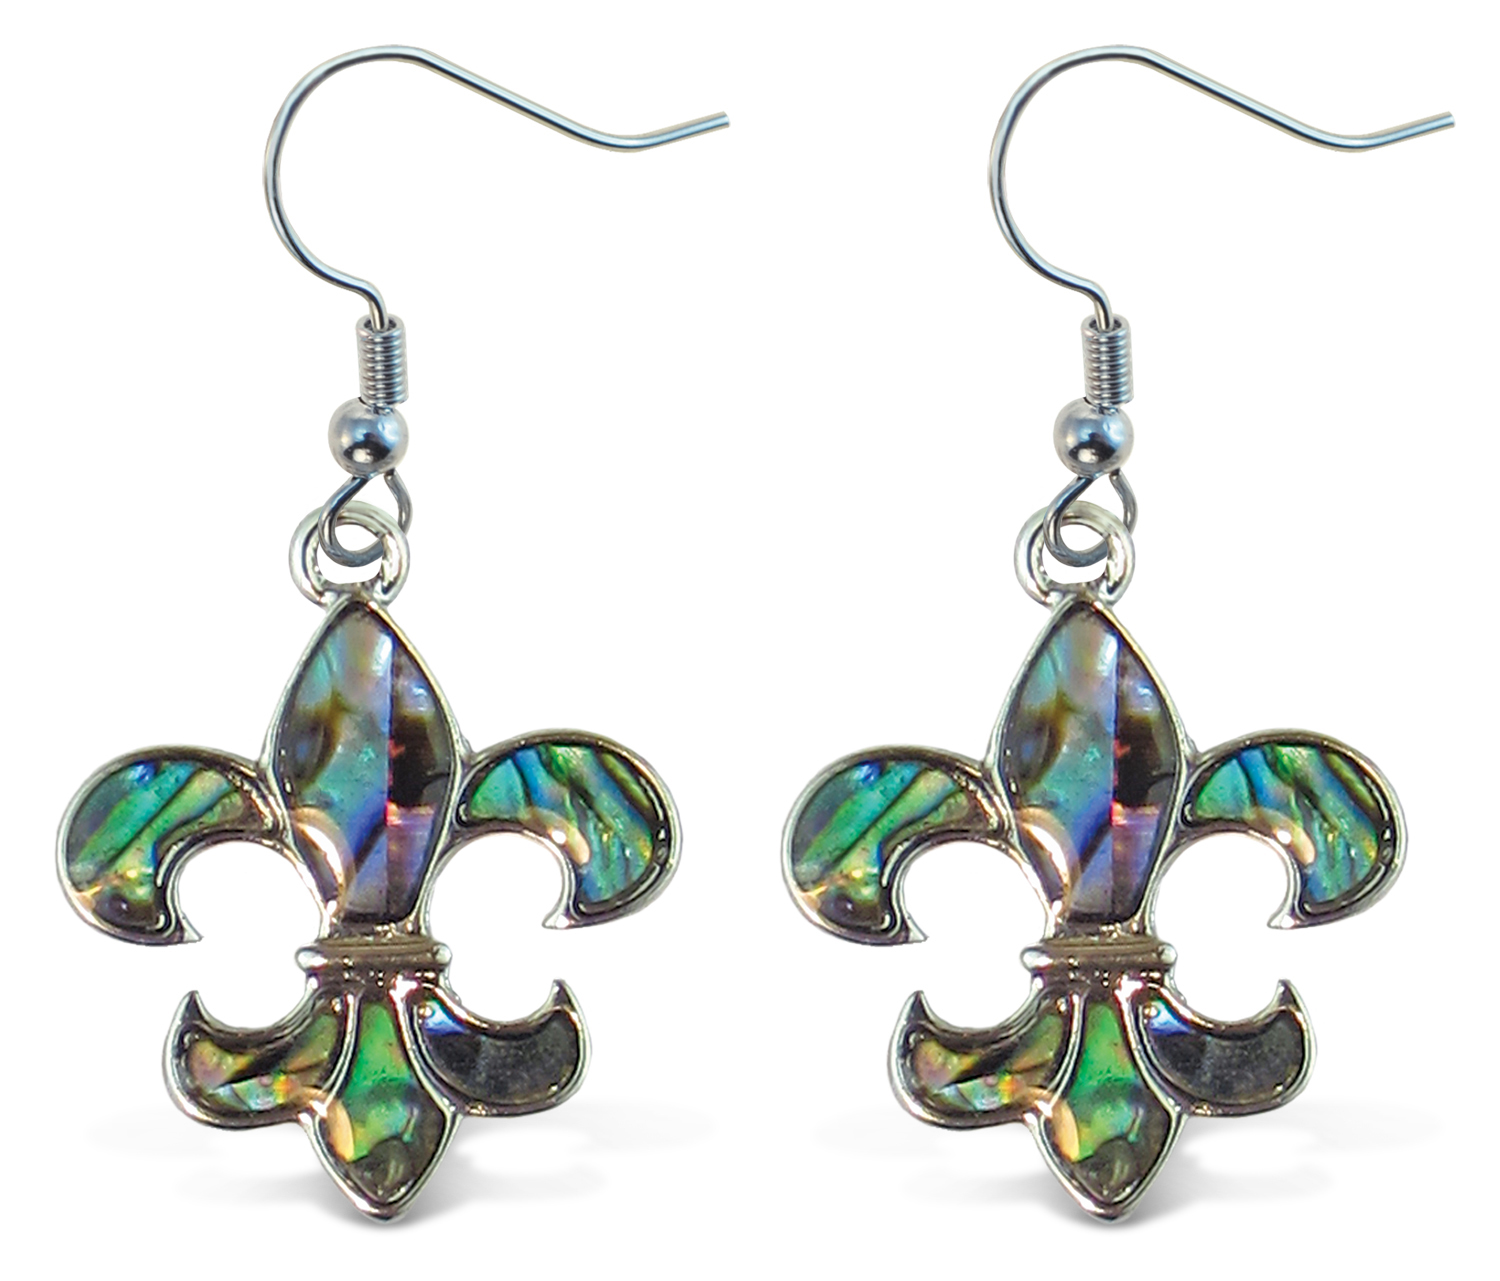 Aqua JEWELRY Earrings Dangle Post